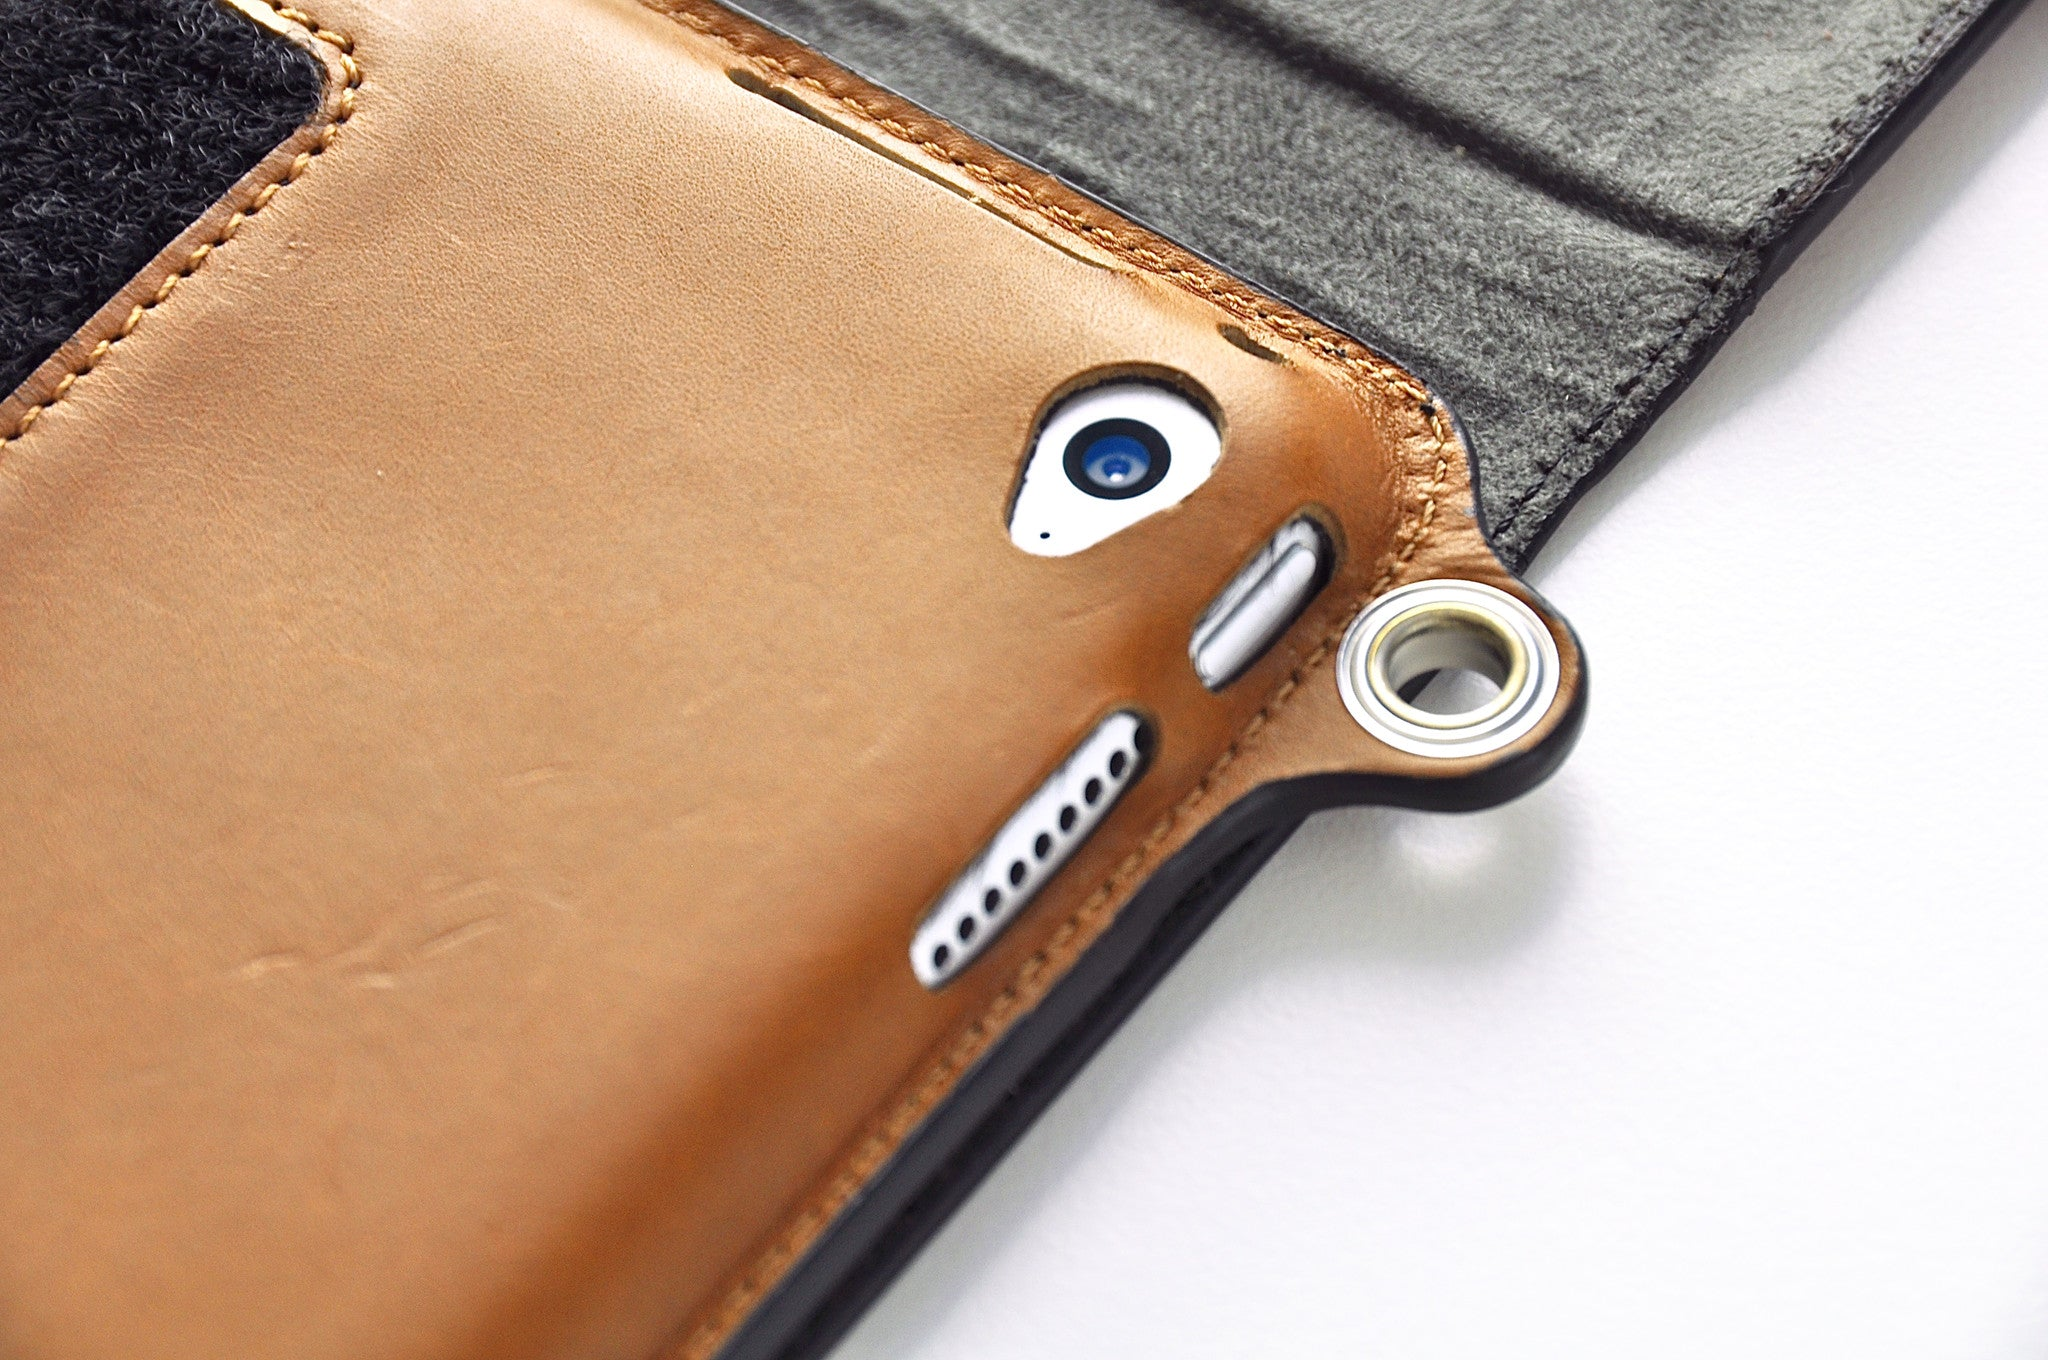 Camera lens is exposed for taking pictures when iPad case is in hands-free mode.